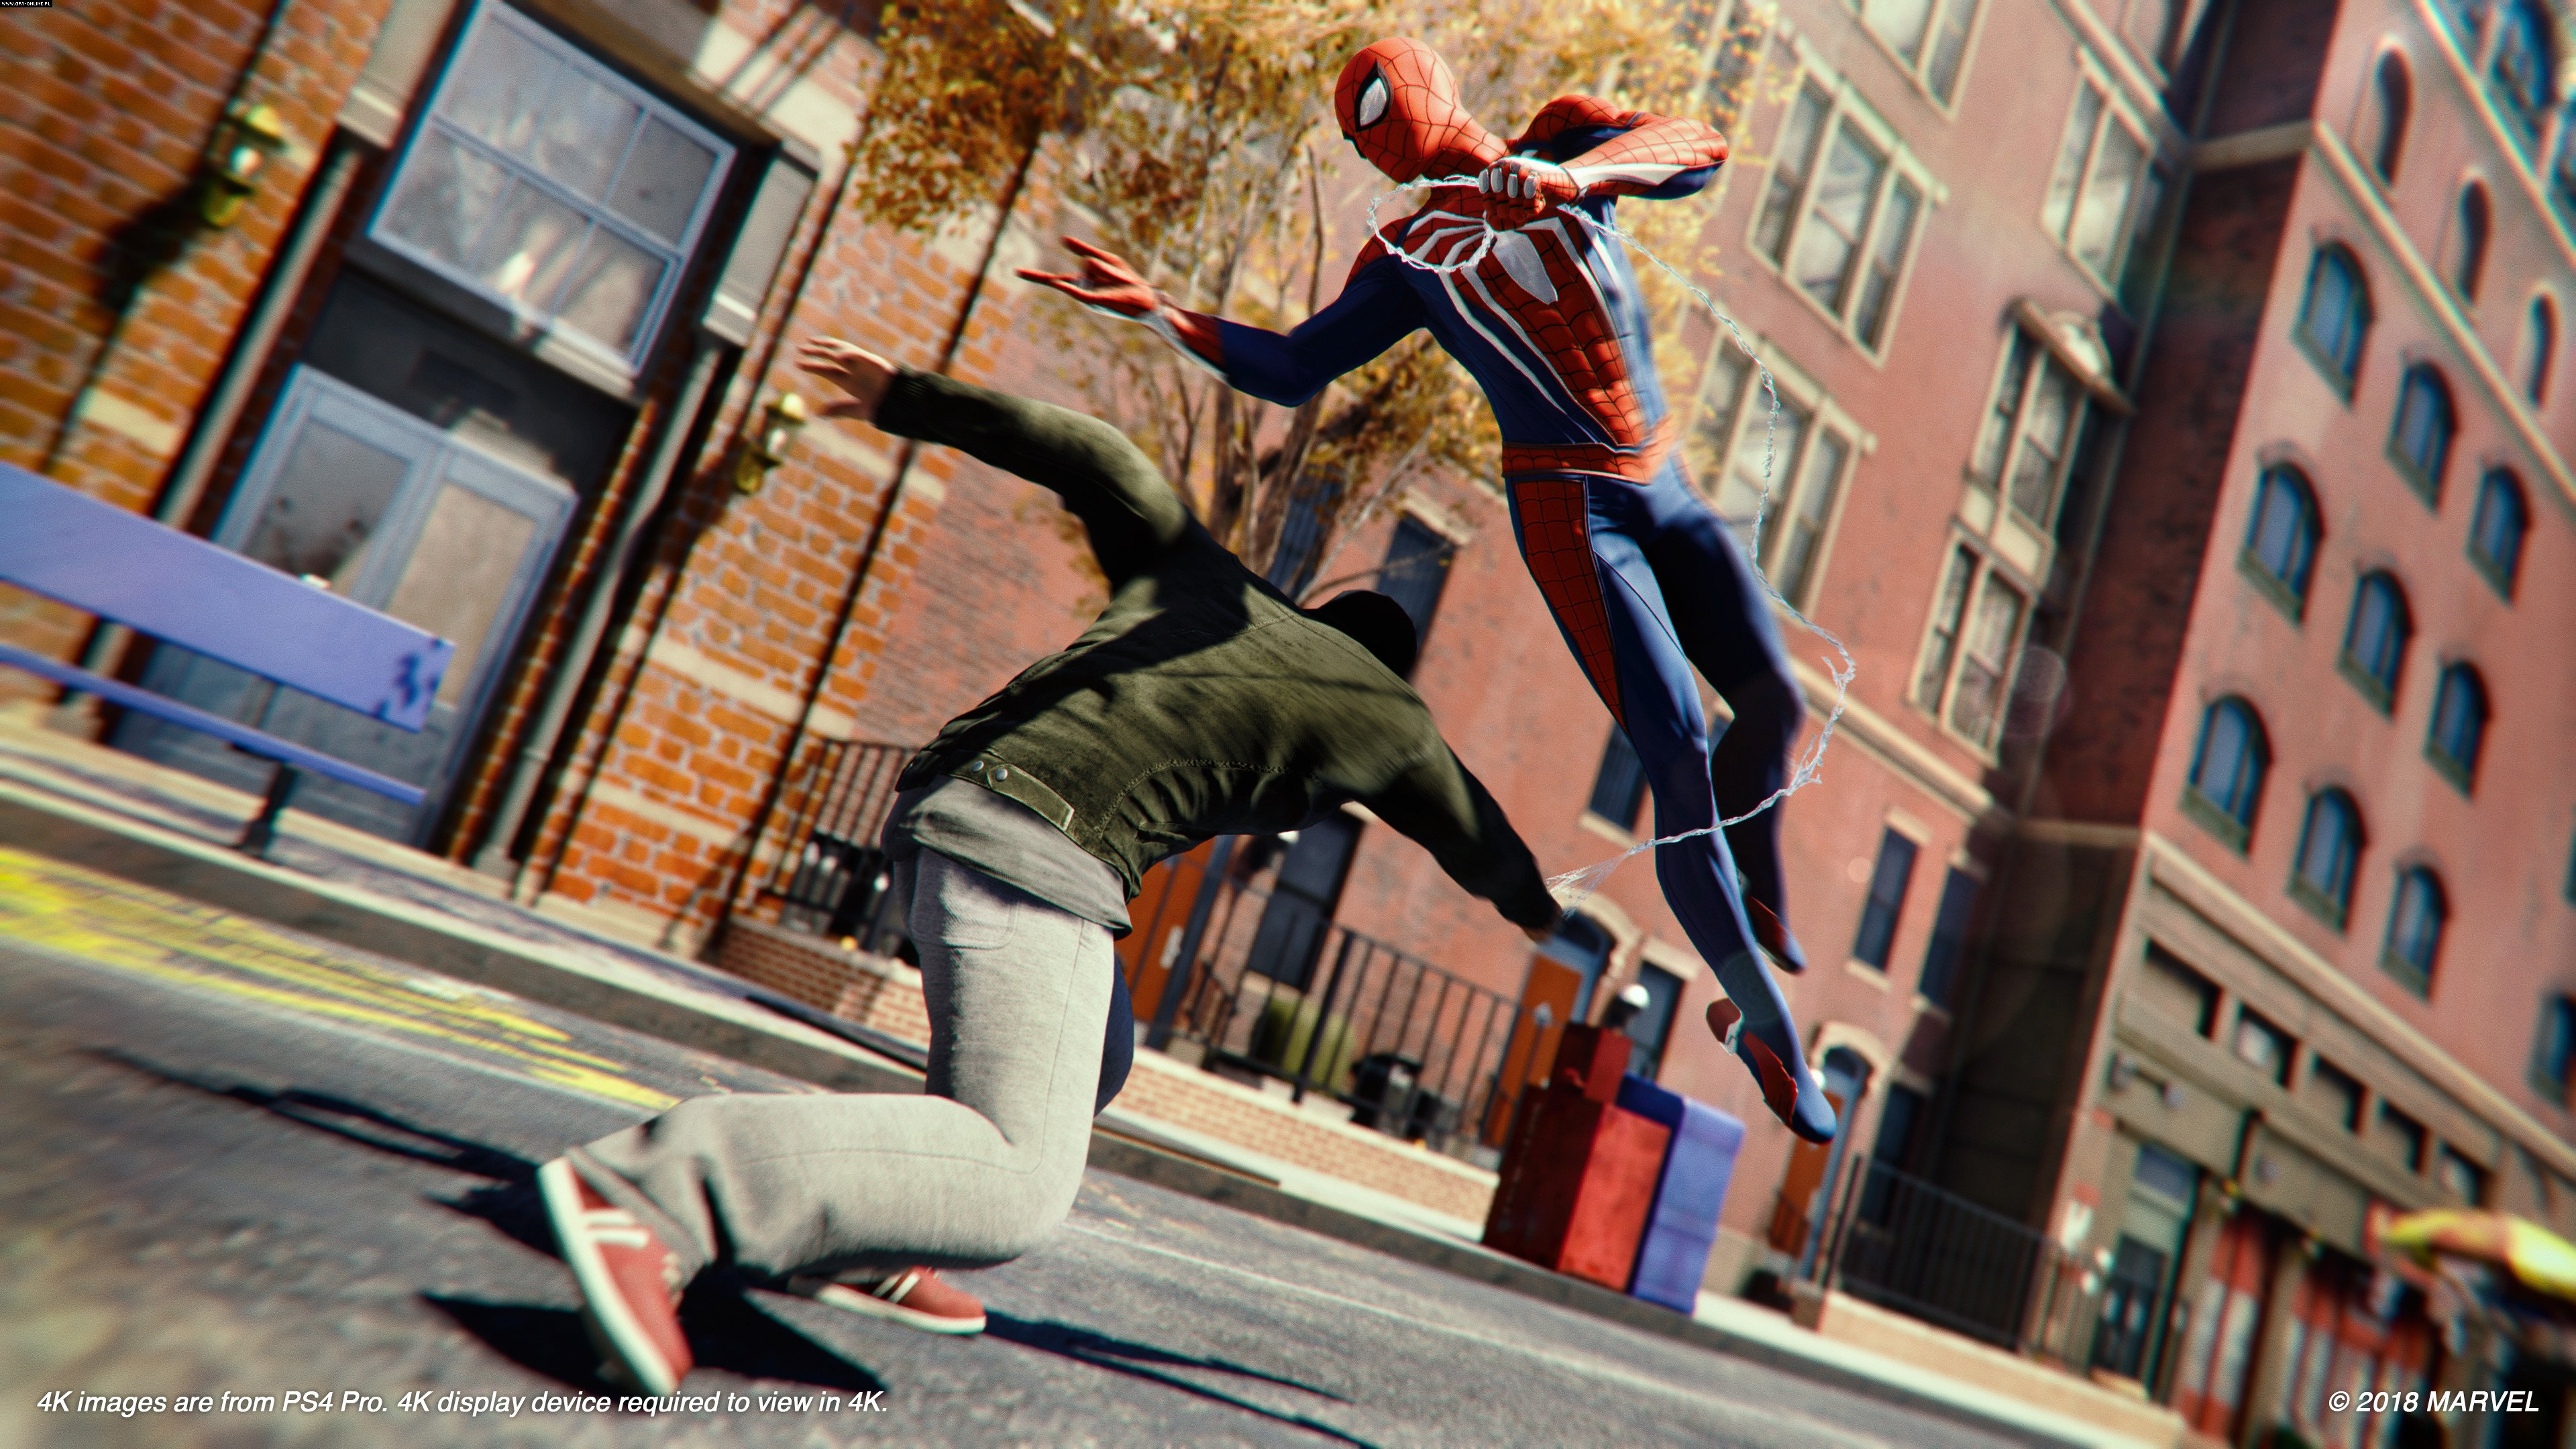 Spider-Man PS4 Games Image 14/47, Insomniac Games, Sony Interactive Entertainment